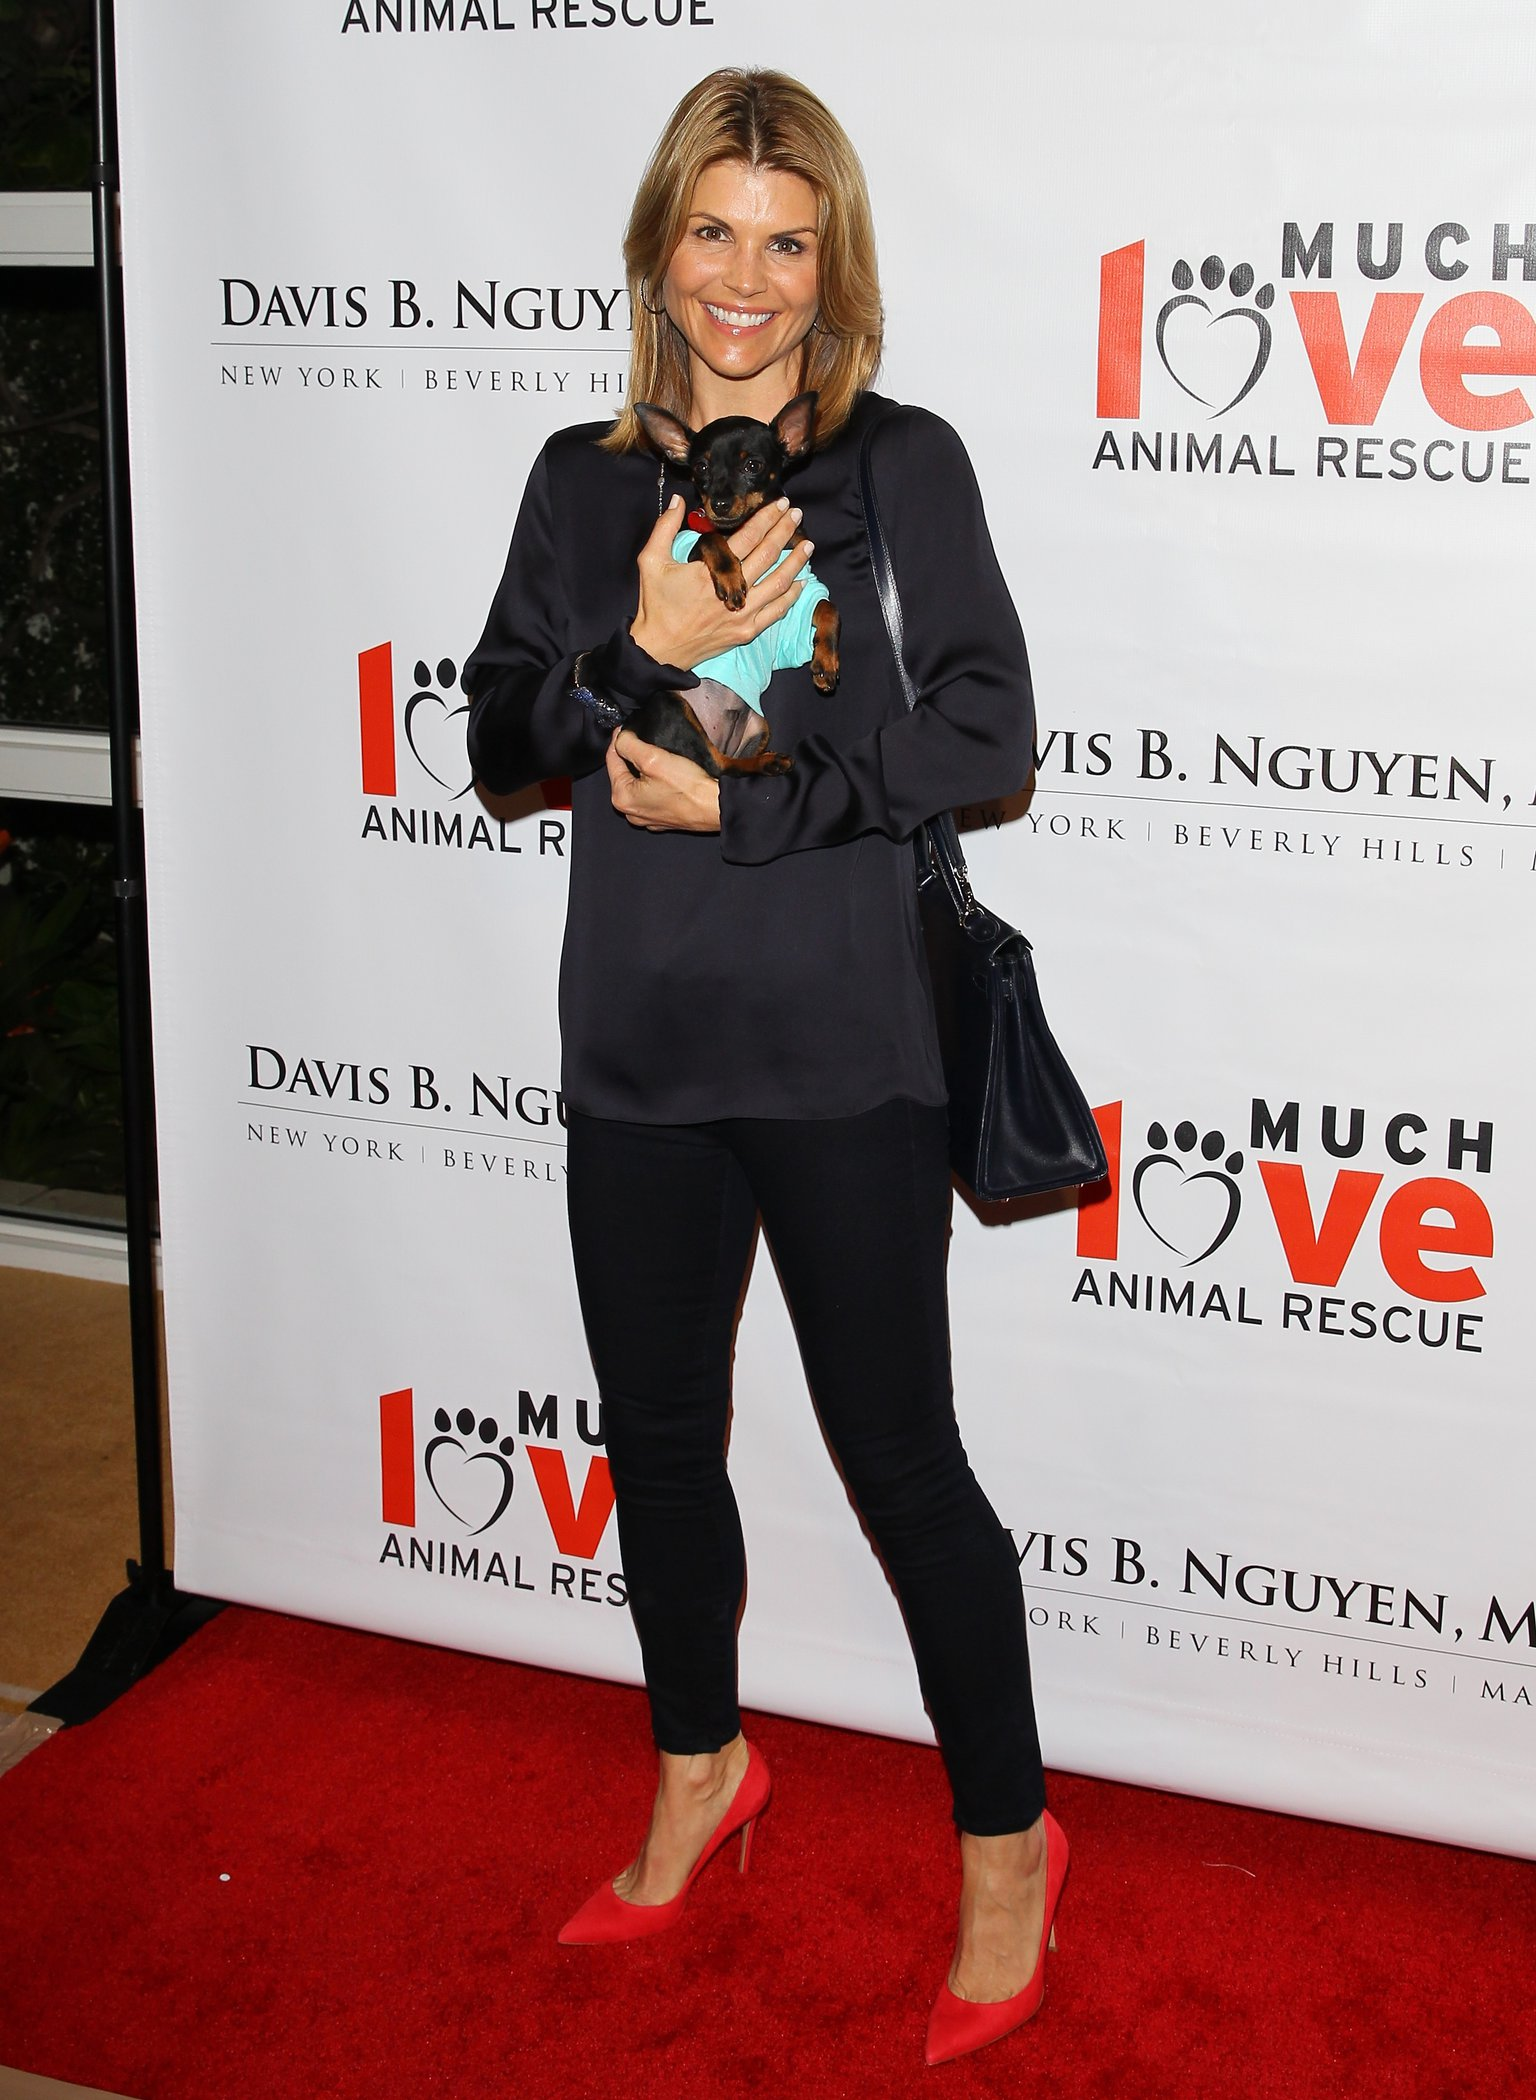 Lori Loughlin Makeovers For Mutts Fundraiser (March 14, 2013)